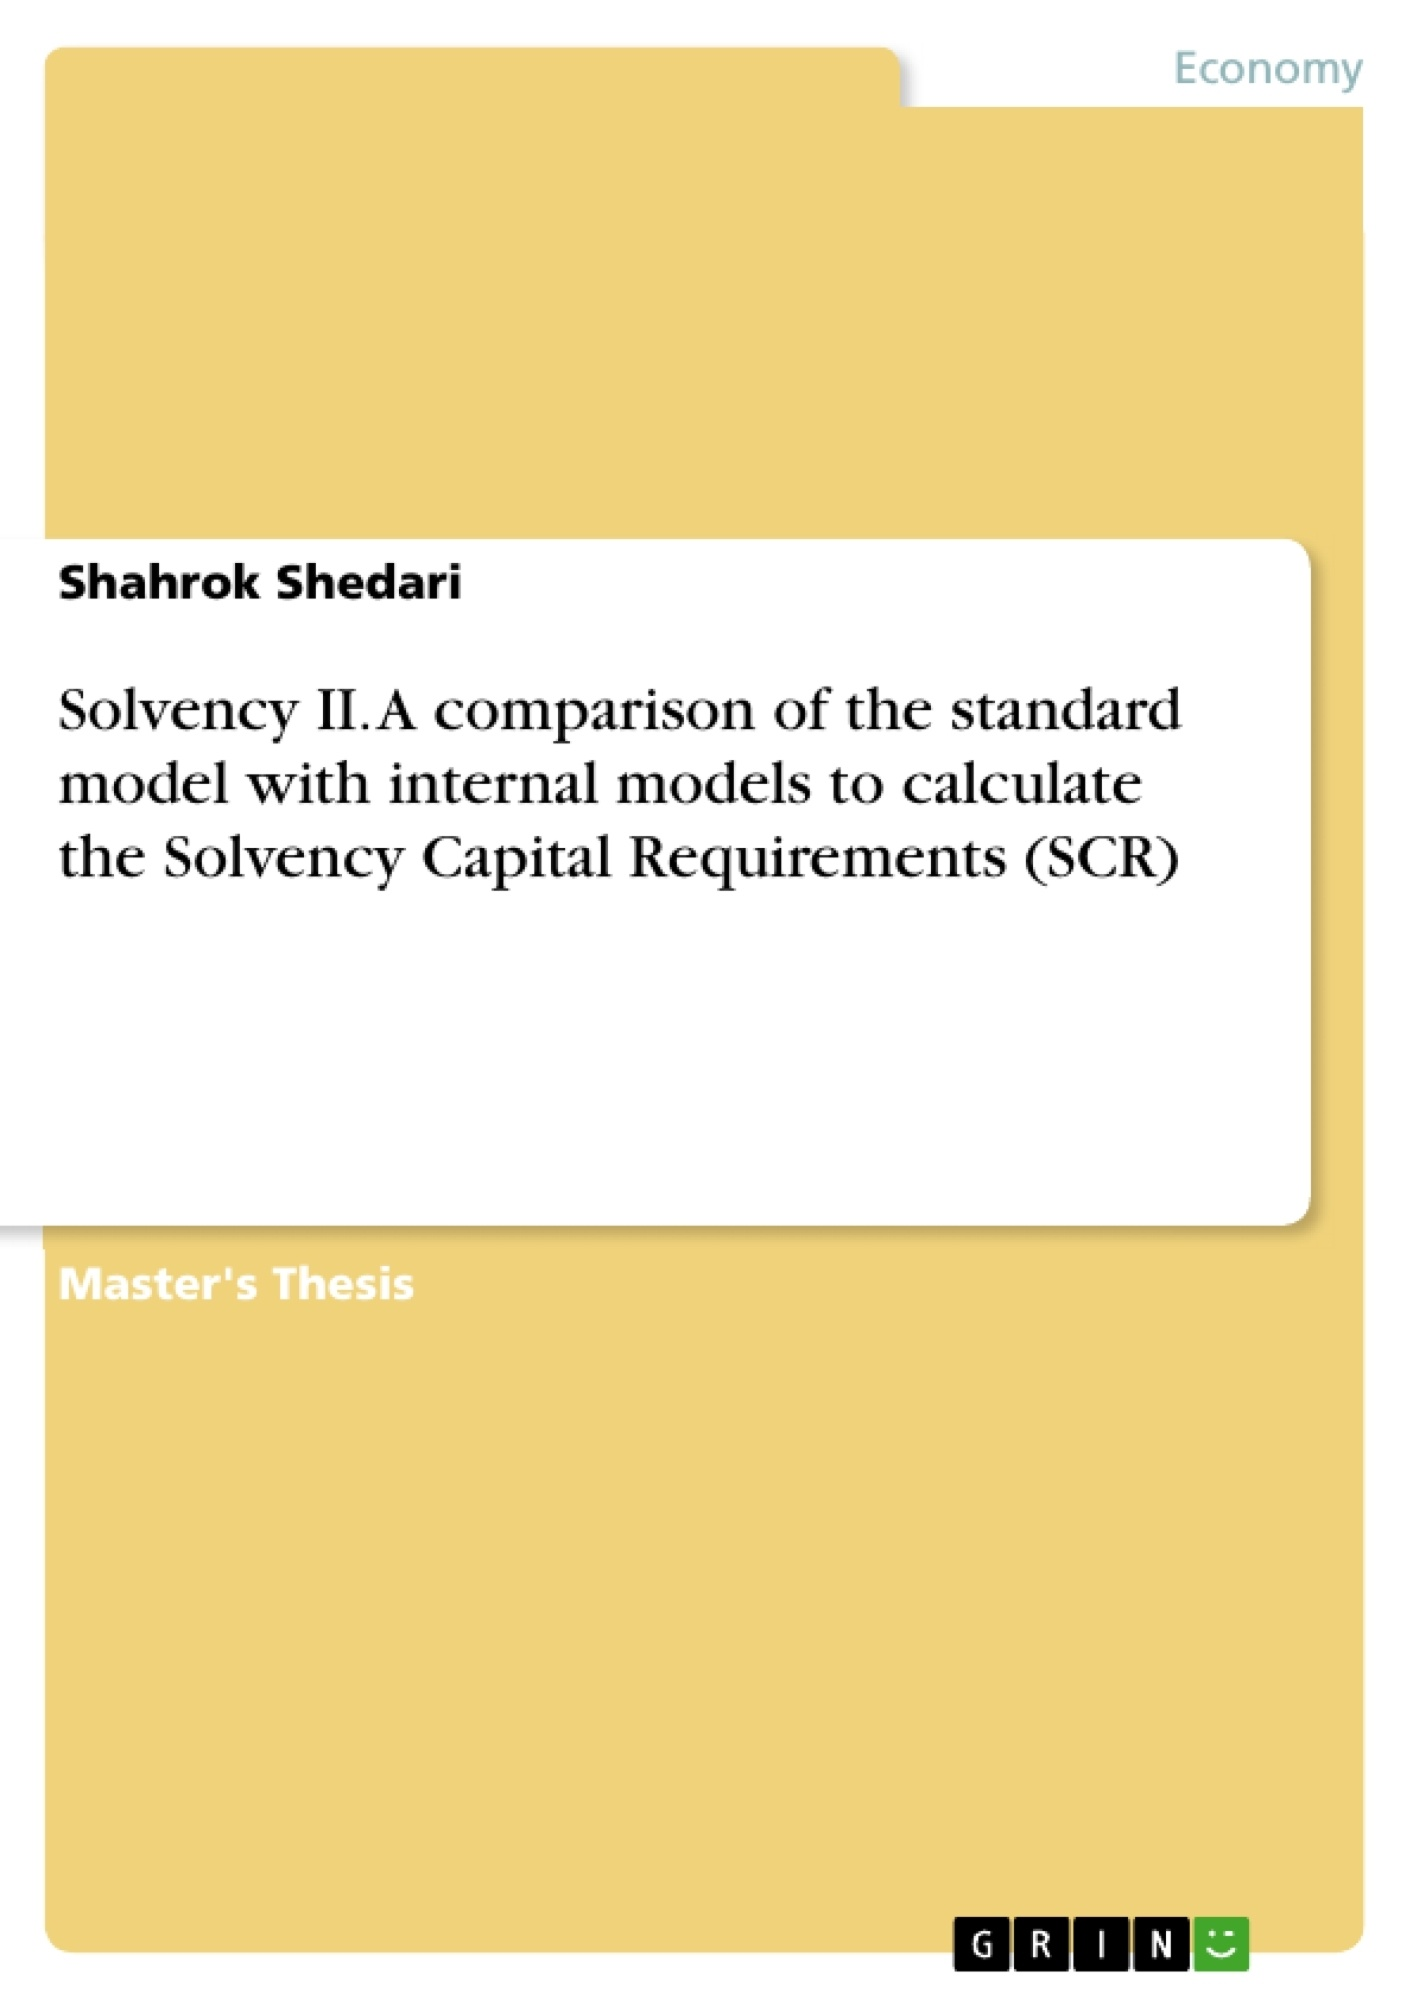 Title: Solvency II. A comparison of the standard model with internal models to calculate the Solvency Capital Requirements (SCR)